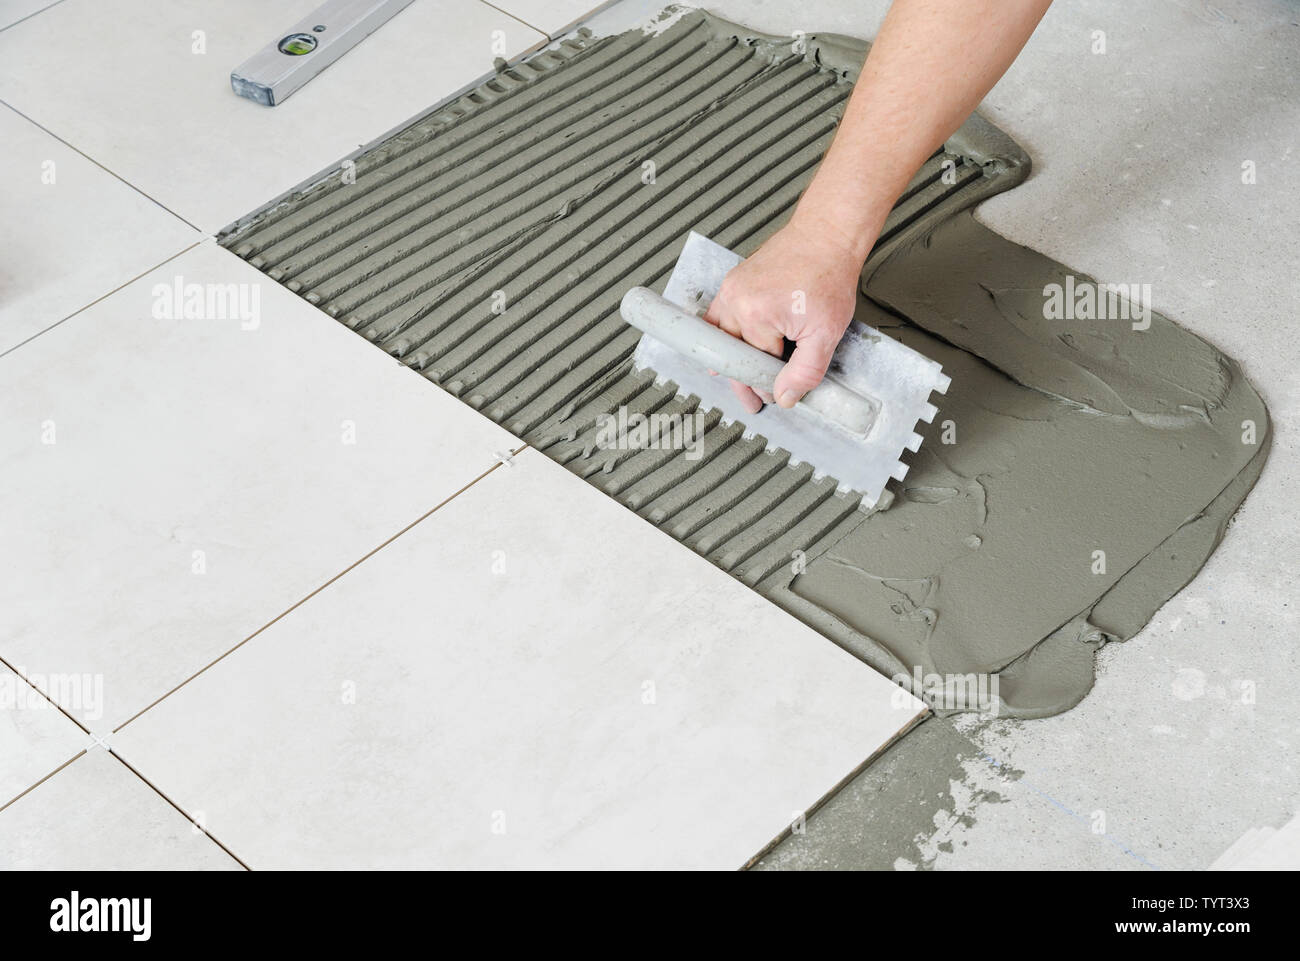 https www alamy com the workers hand is putting tiles adhesive to the wall with the notched trowel image258070795 html